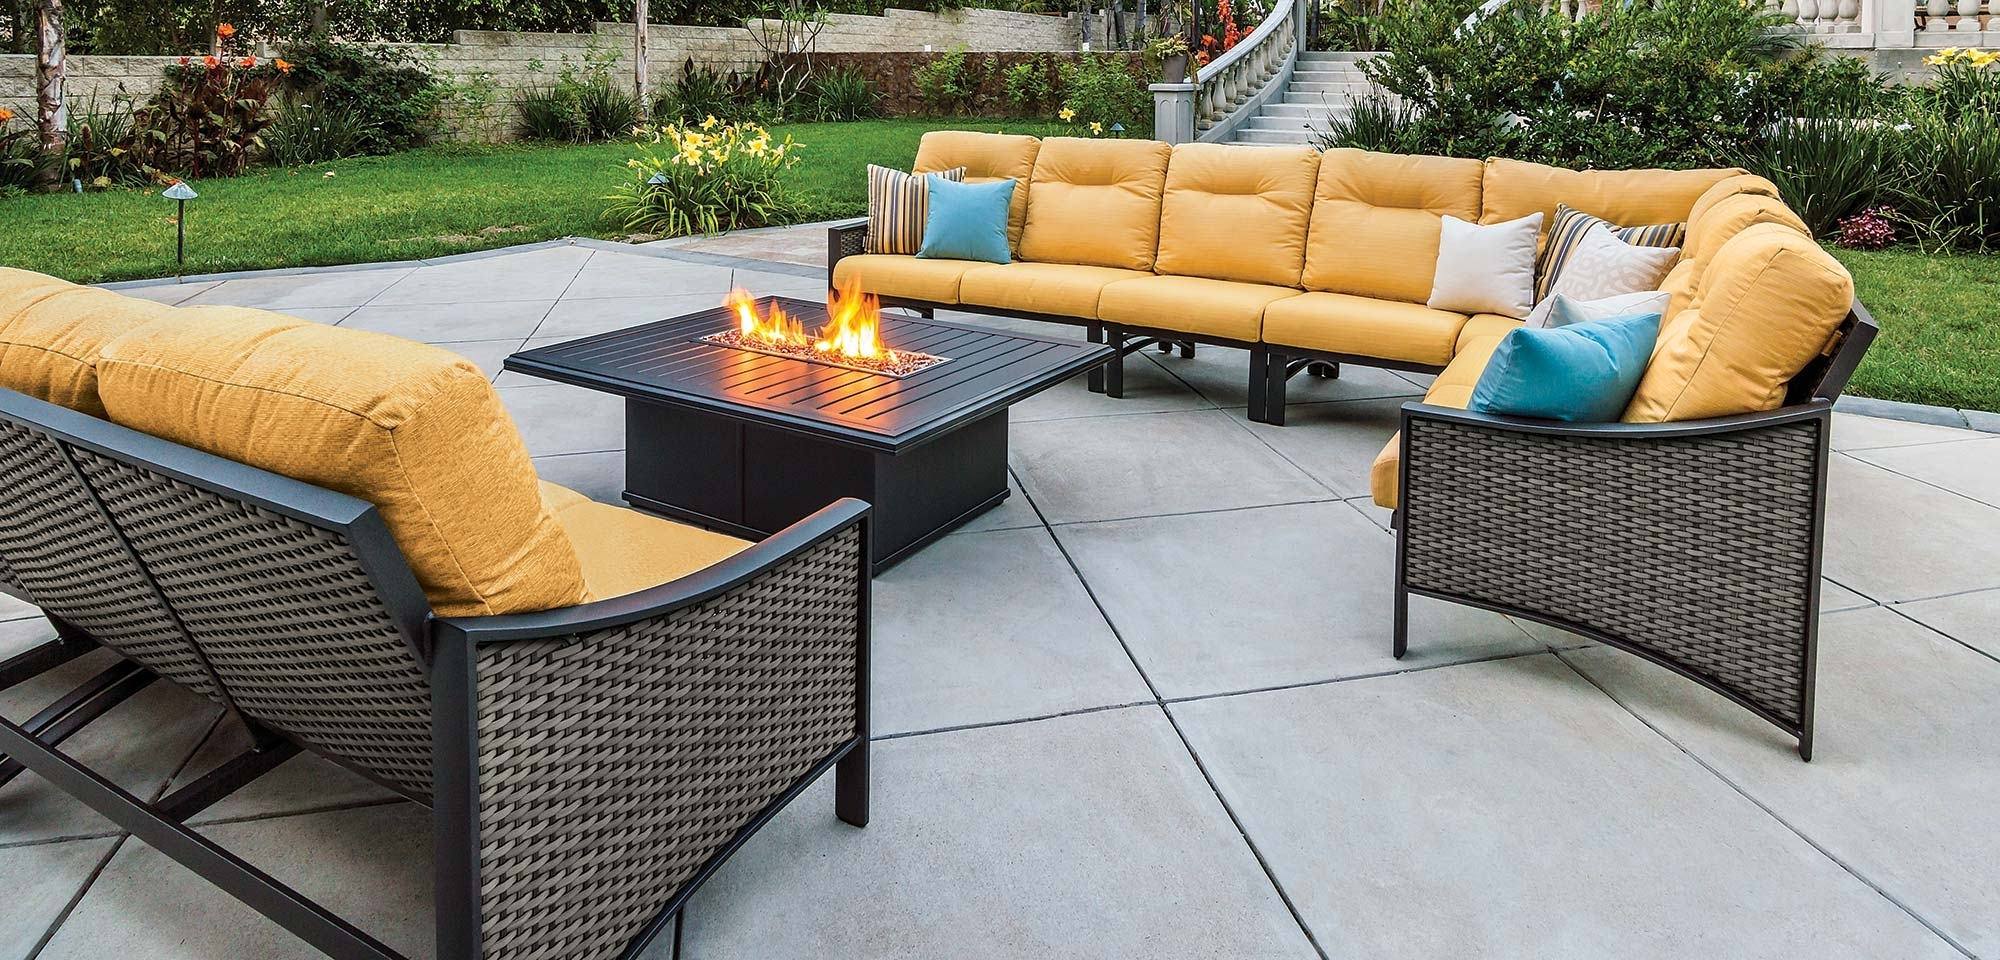 Most Recent Inexpensive Patio Conversation Sets Throughout Engaging Cheap Patio Sectional 13 Outdoor Sofa Furniture All Weather (View 4 of 20)